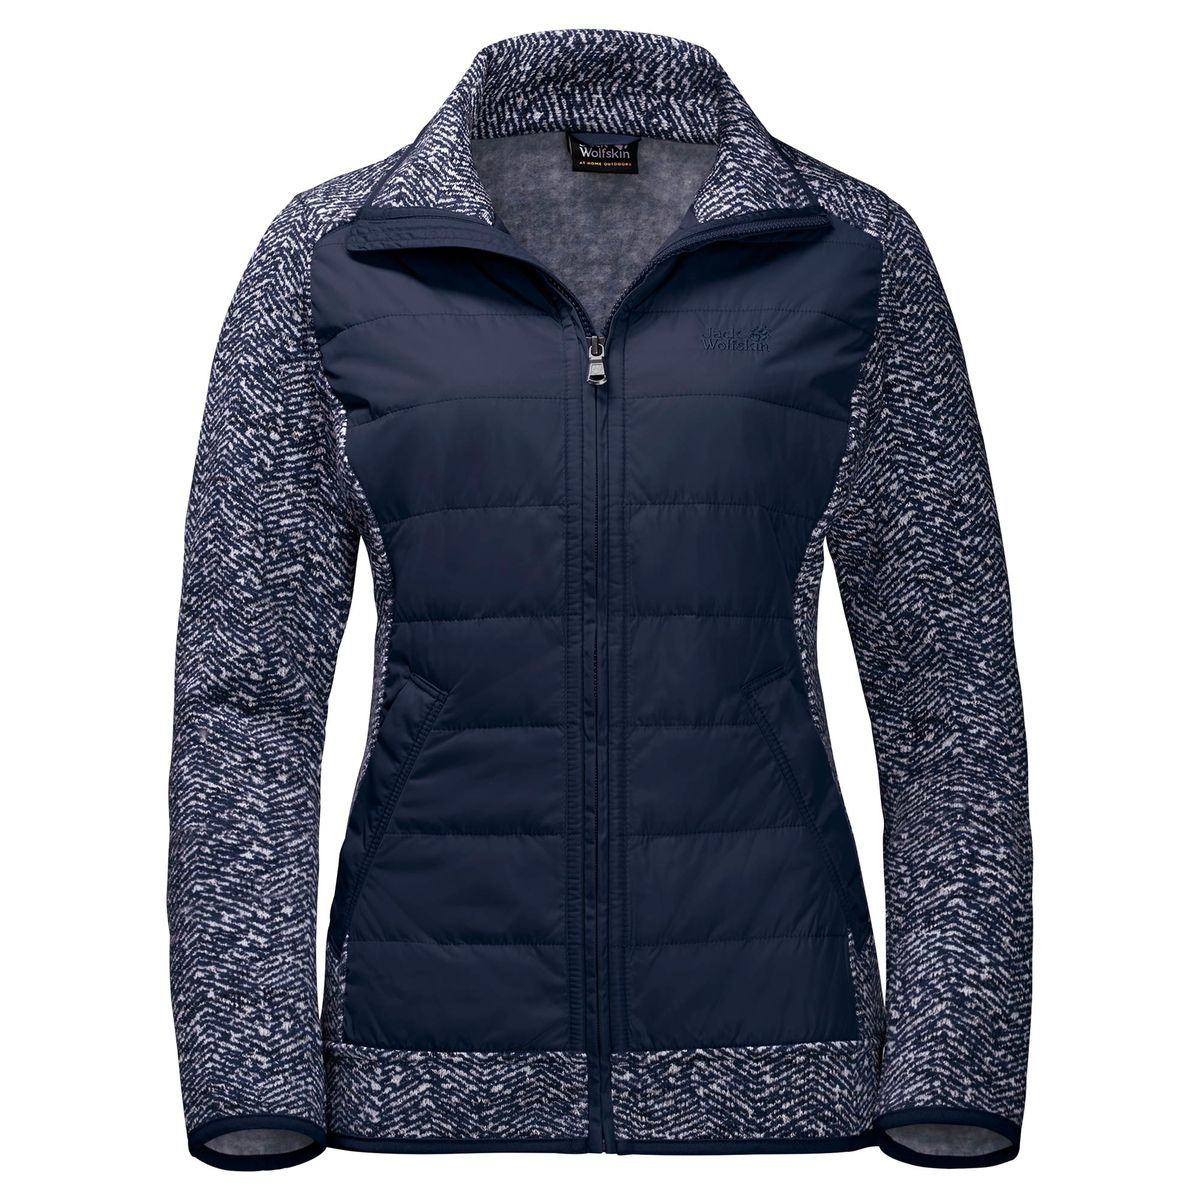 BELLEVILLE CROSSING Damen Jacke